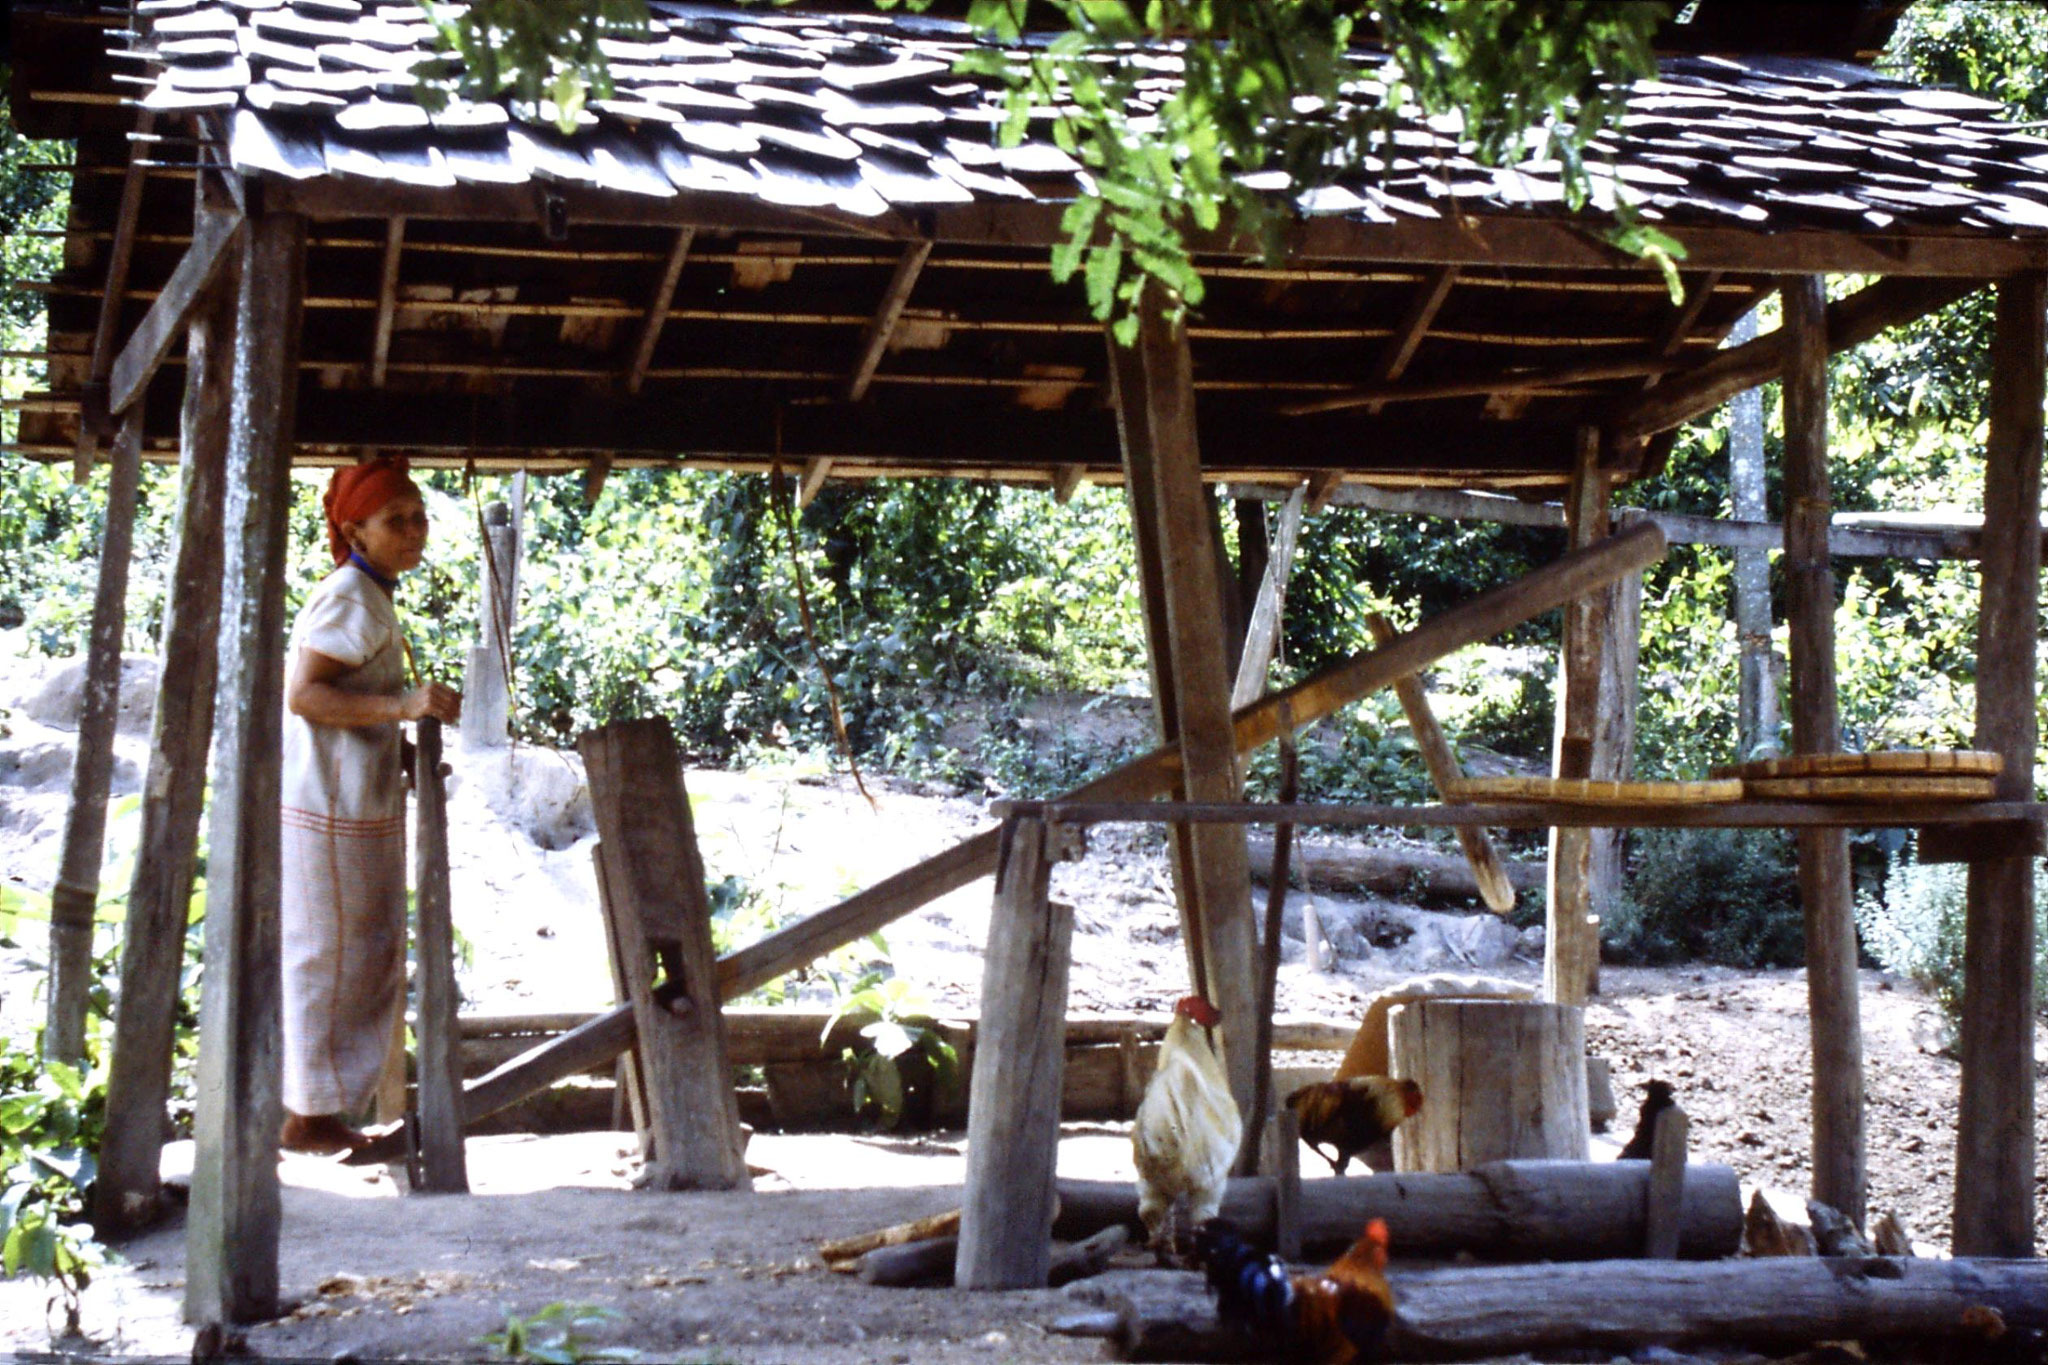 12/6/1990: 21: Trek - Hue Kom Karen village, woman pounding rice